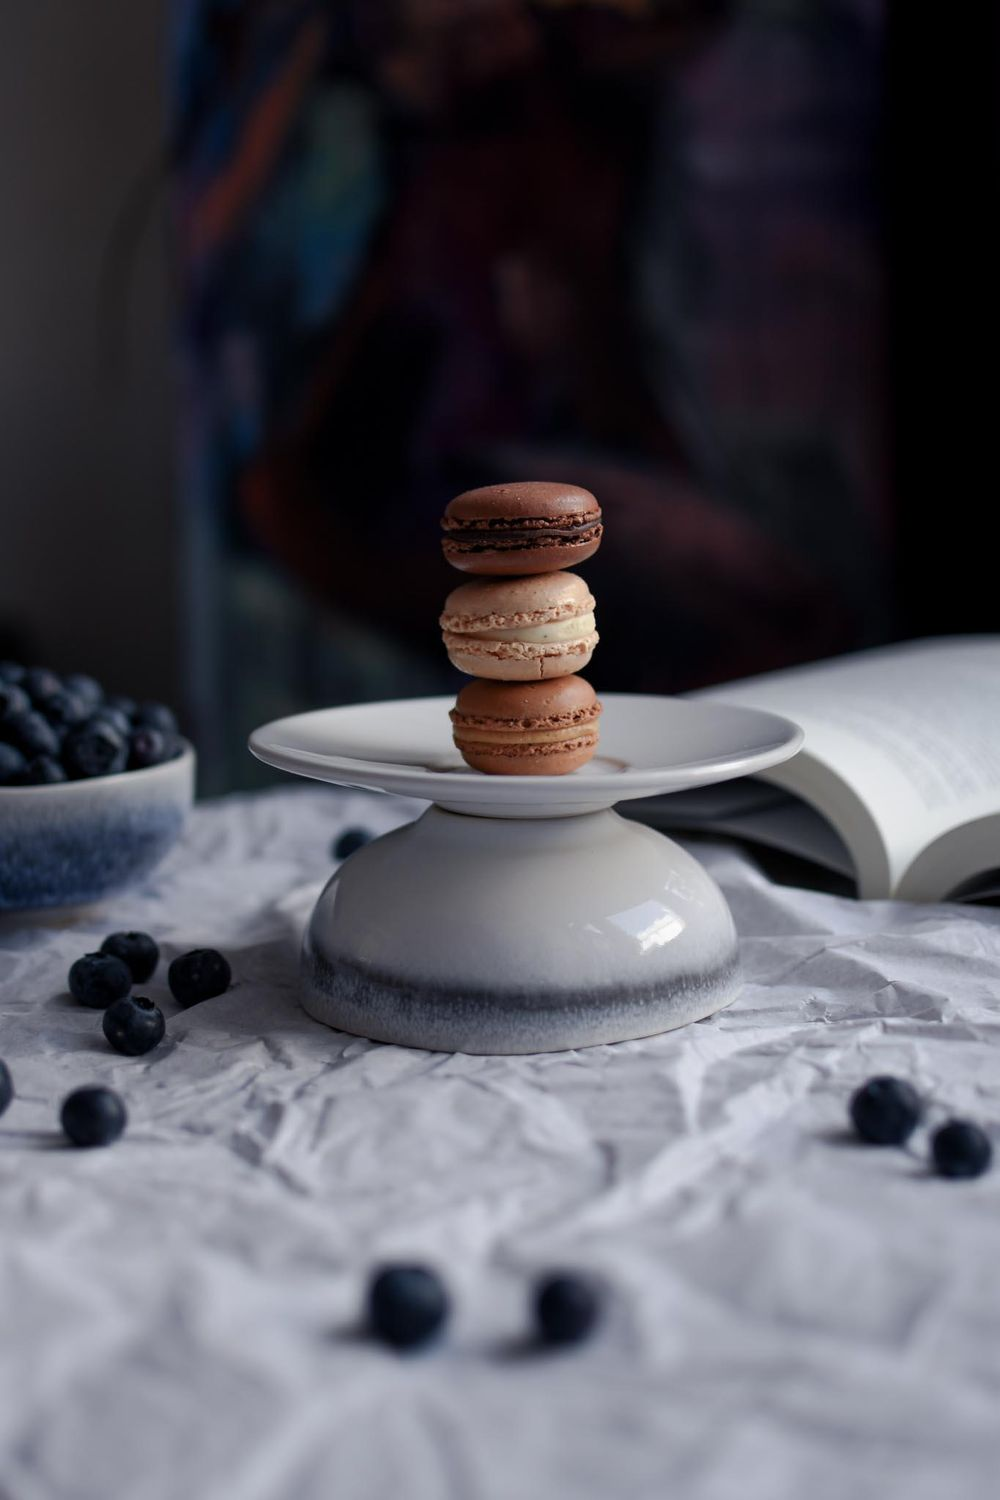 Macarrons & Blueberries - image 2 - student project